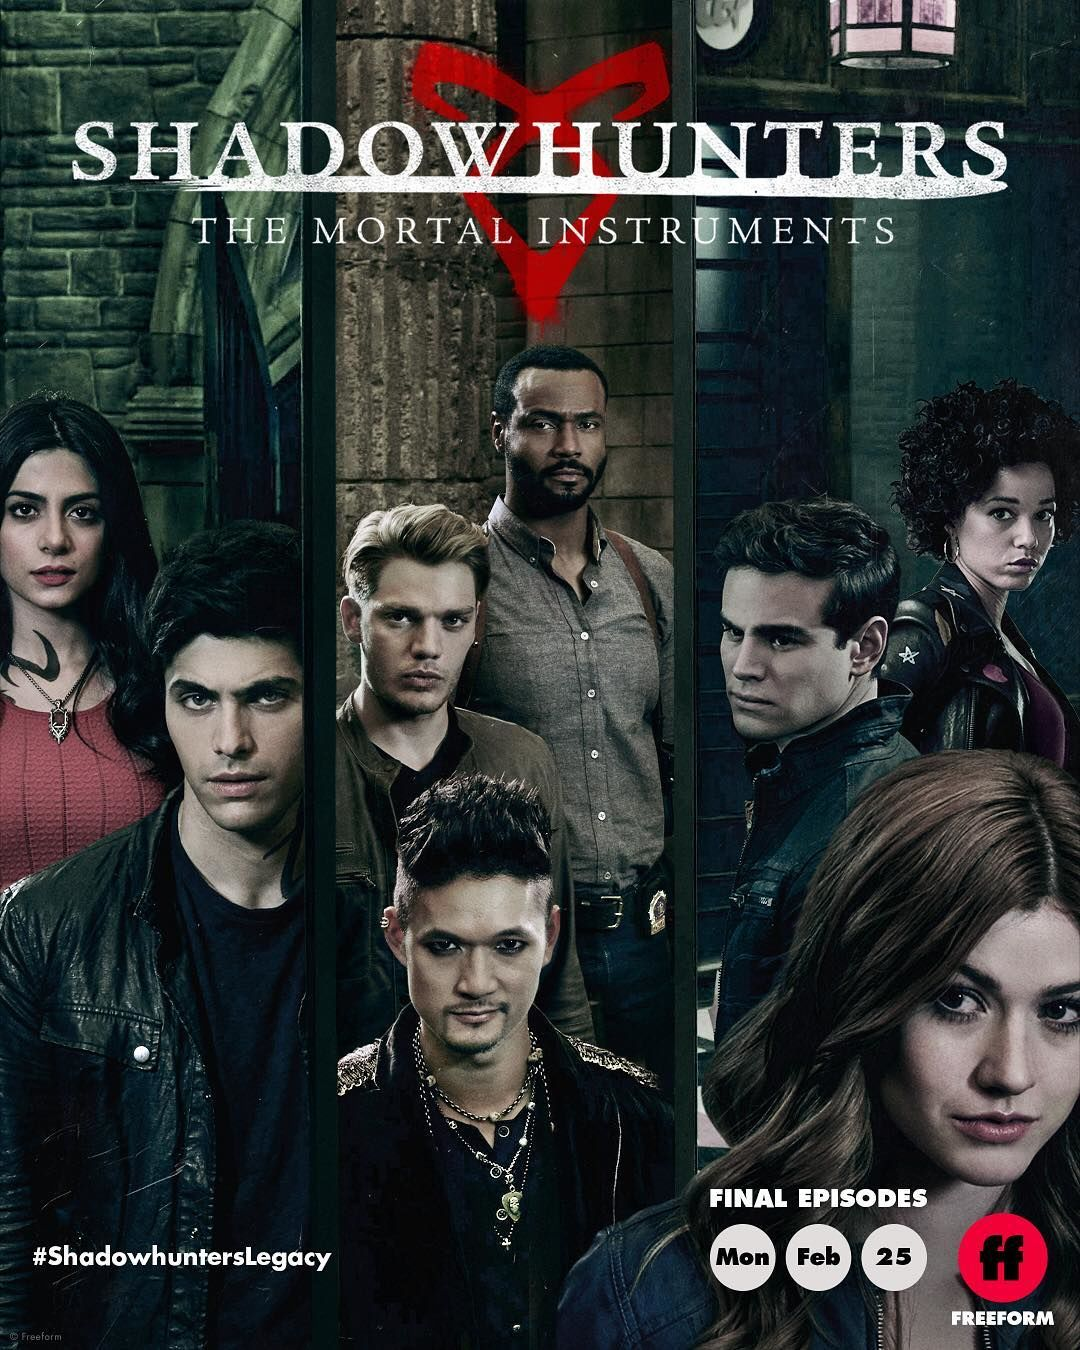 Shadowhunters: The Mortal Instruments teaser image